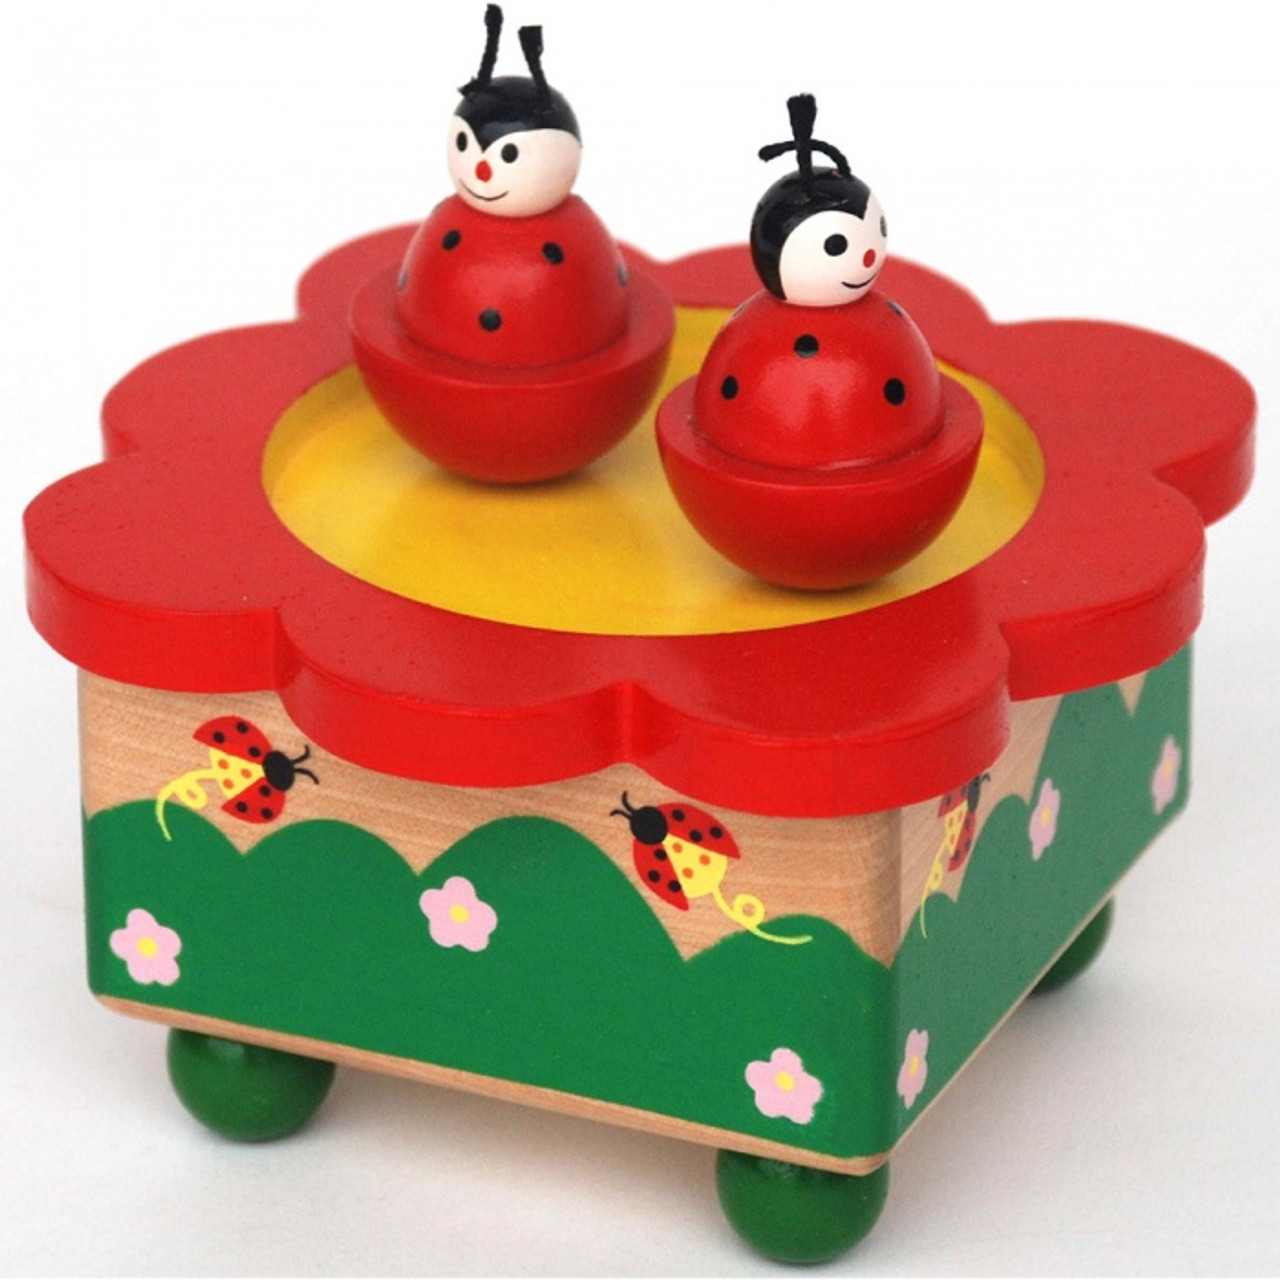 Toyslink Music Box at Baby Barn Discounts A Beautiful wind-up clockwork music box, featuring two magnetic ladybugs.